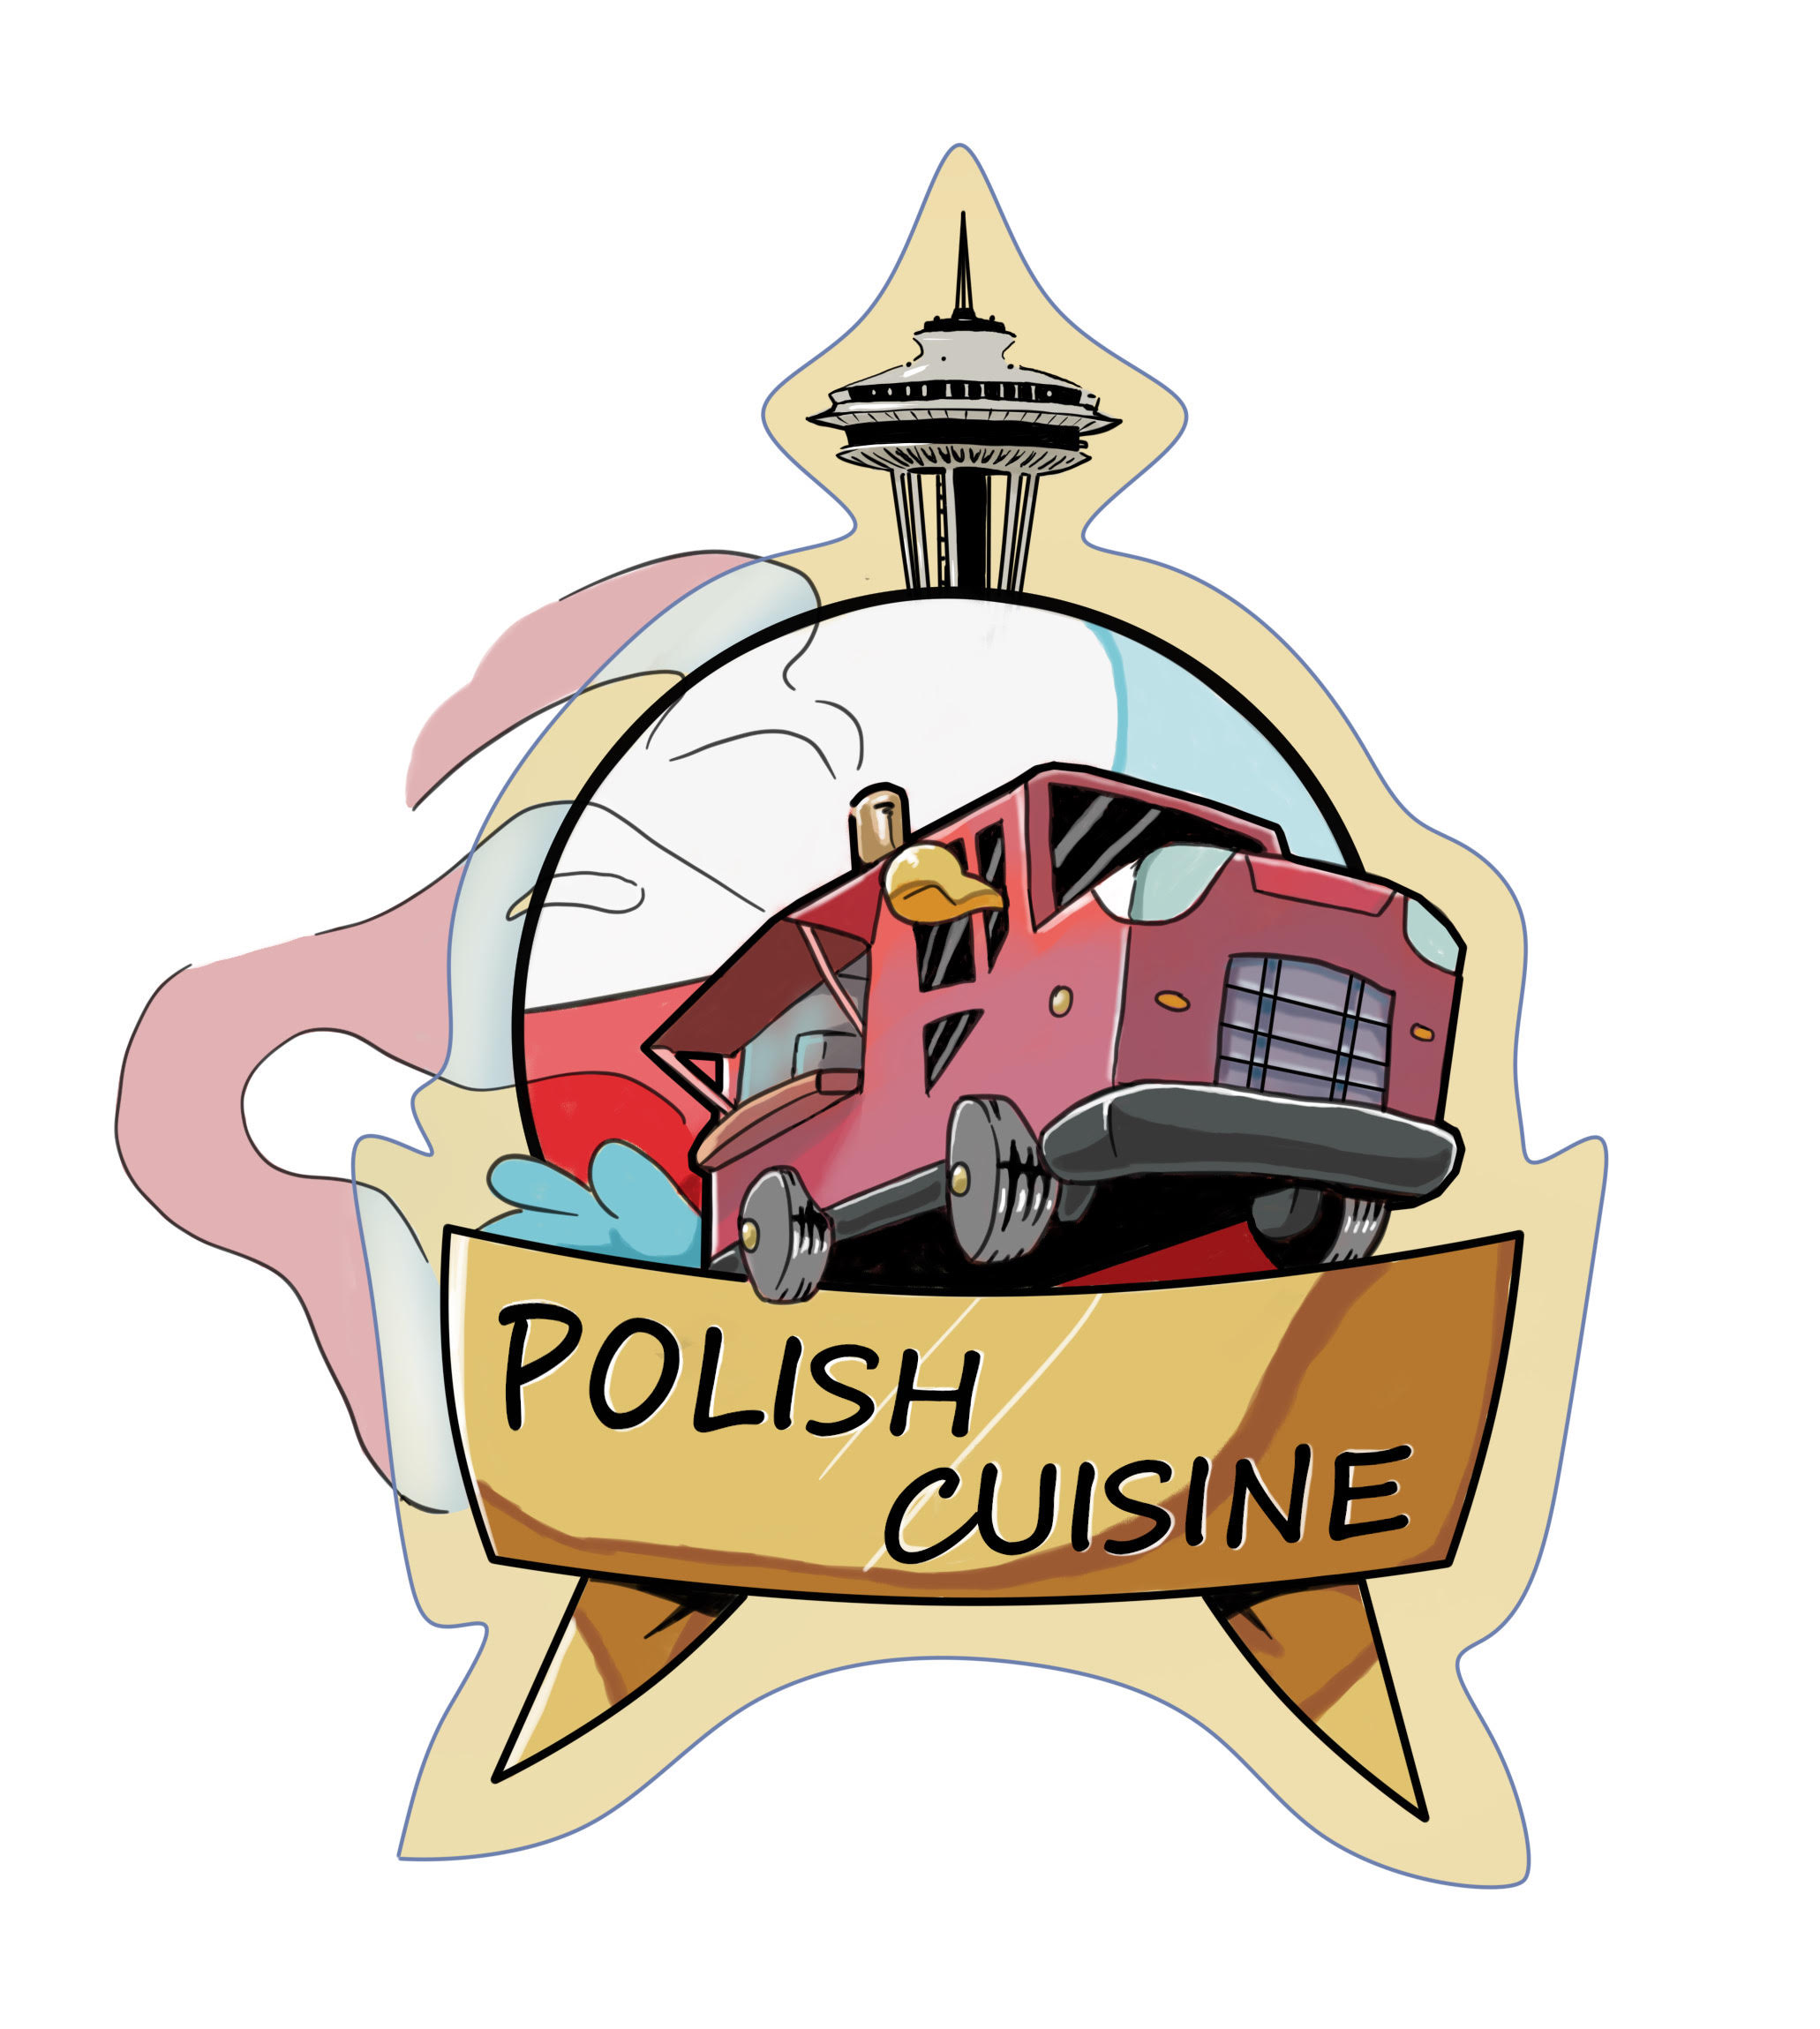 polish cuisine on wheels